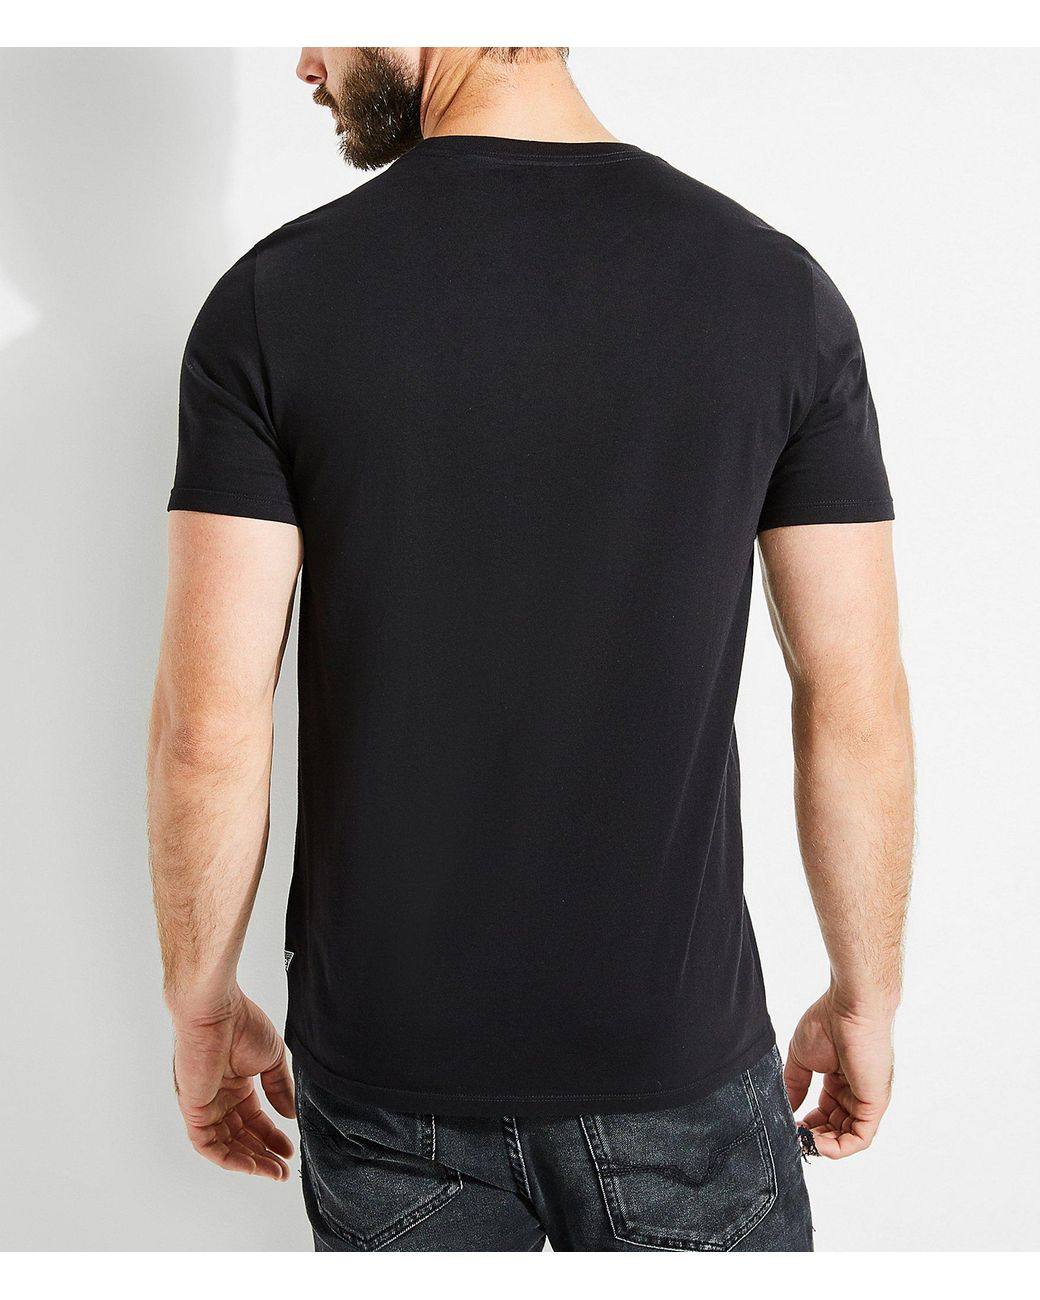 bfcd6c7070 Guess Short-sleeve Victorian Foiled Graphic Crew T-shirt in Black for Men -  Lyst